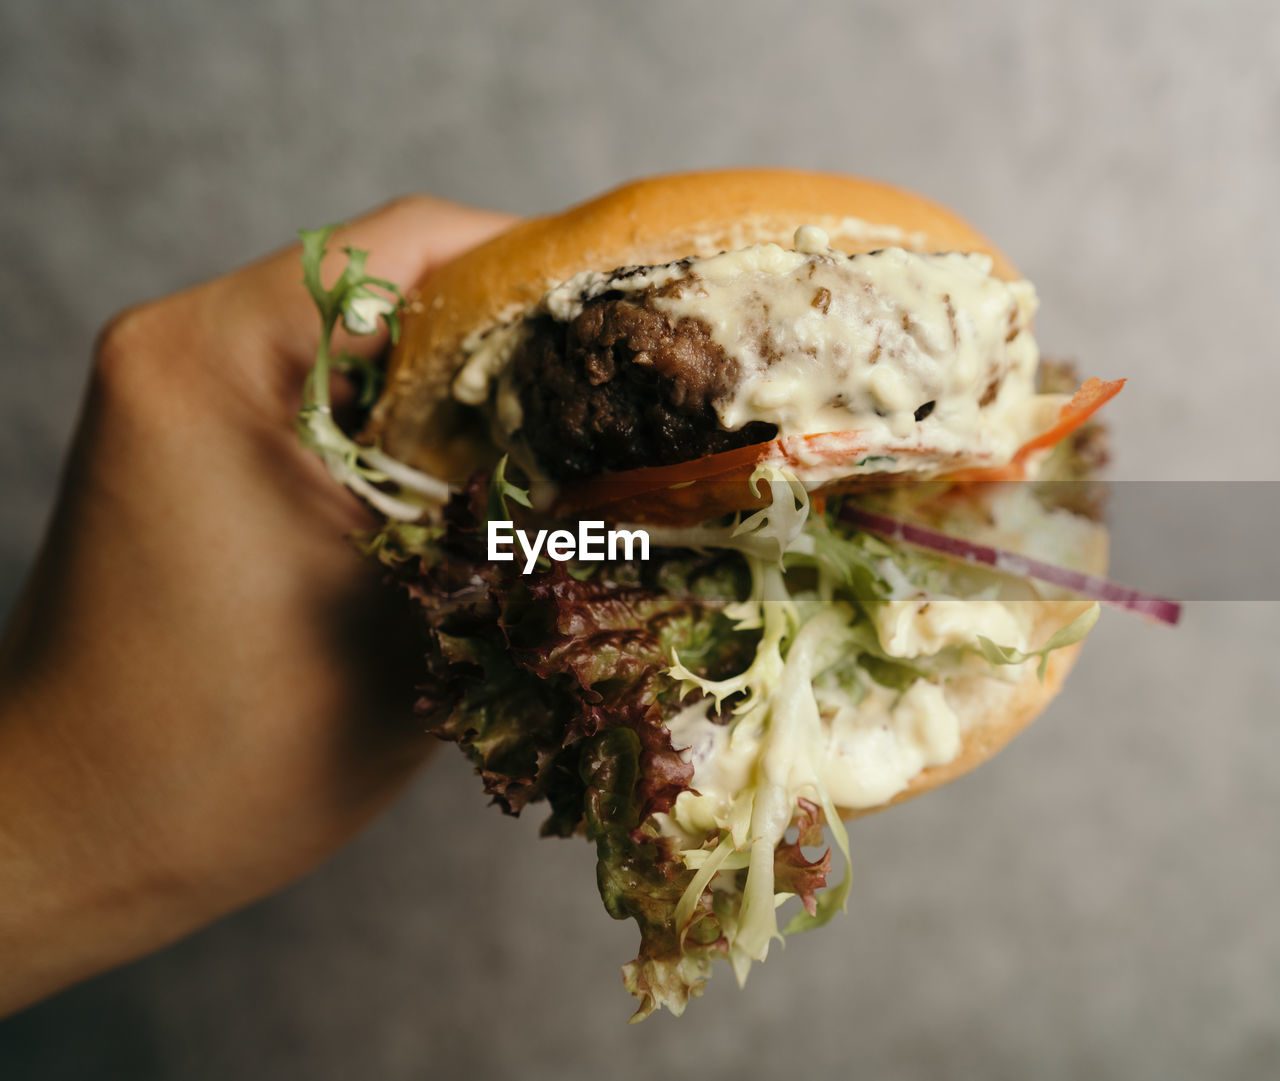 human hand, hand, one person, holding, human body part, real people, food, food and drink, freshness, close-up, unrecognizable person, ready-to-eat, lifestyles, indoors, focus on foreground, body part, personal perspective, sandwich, high angle view, finger, human limb